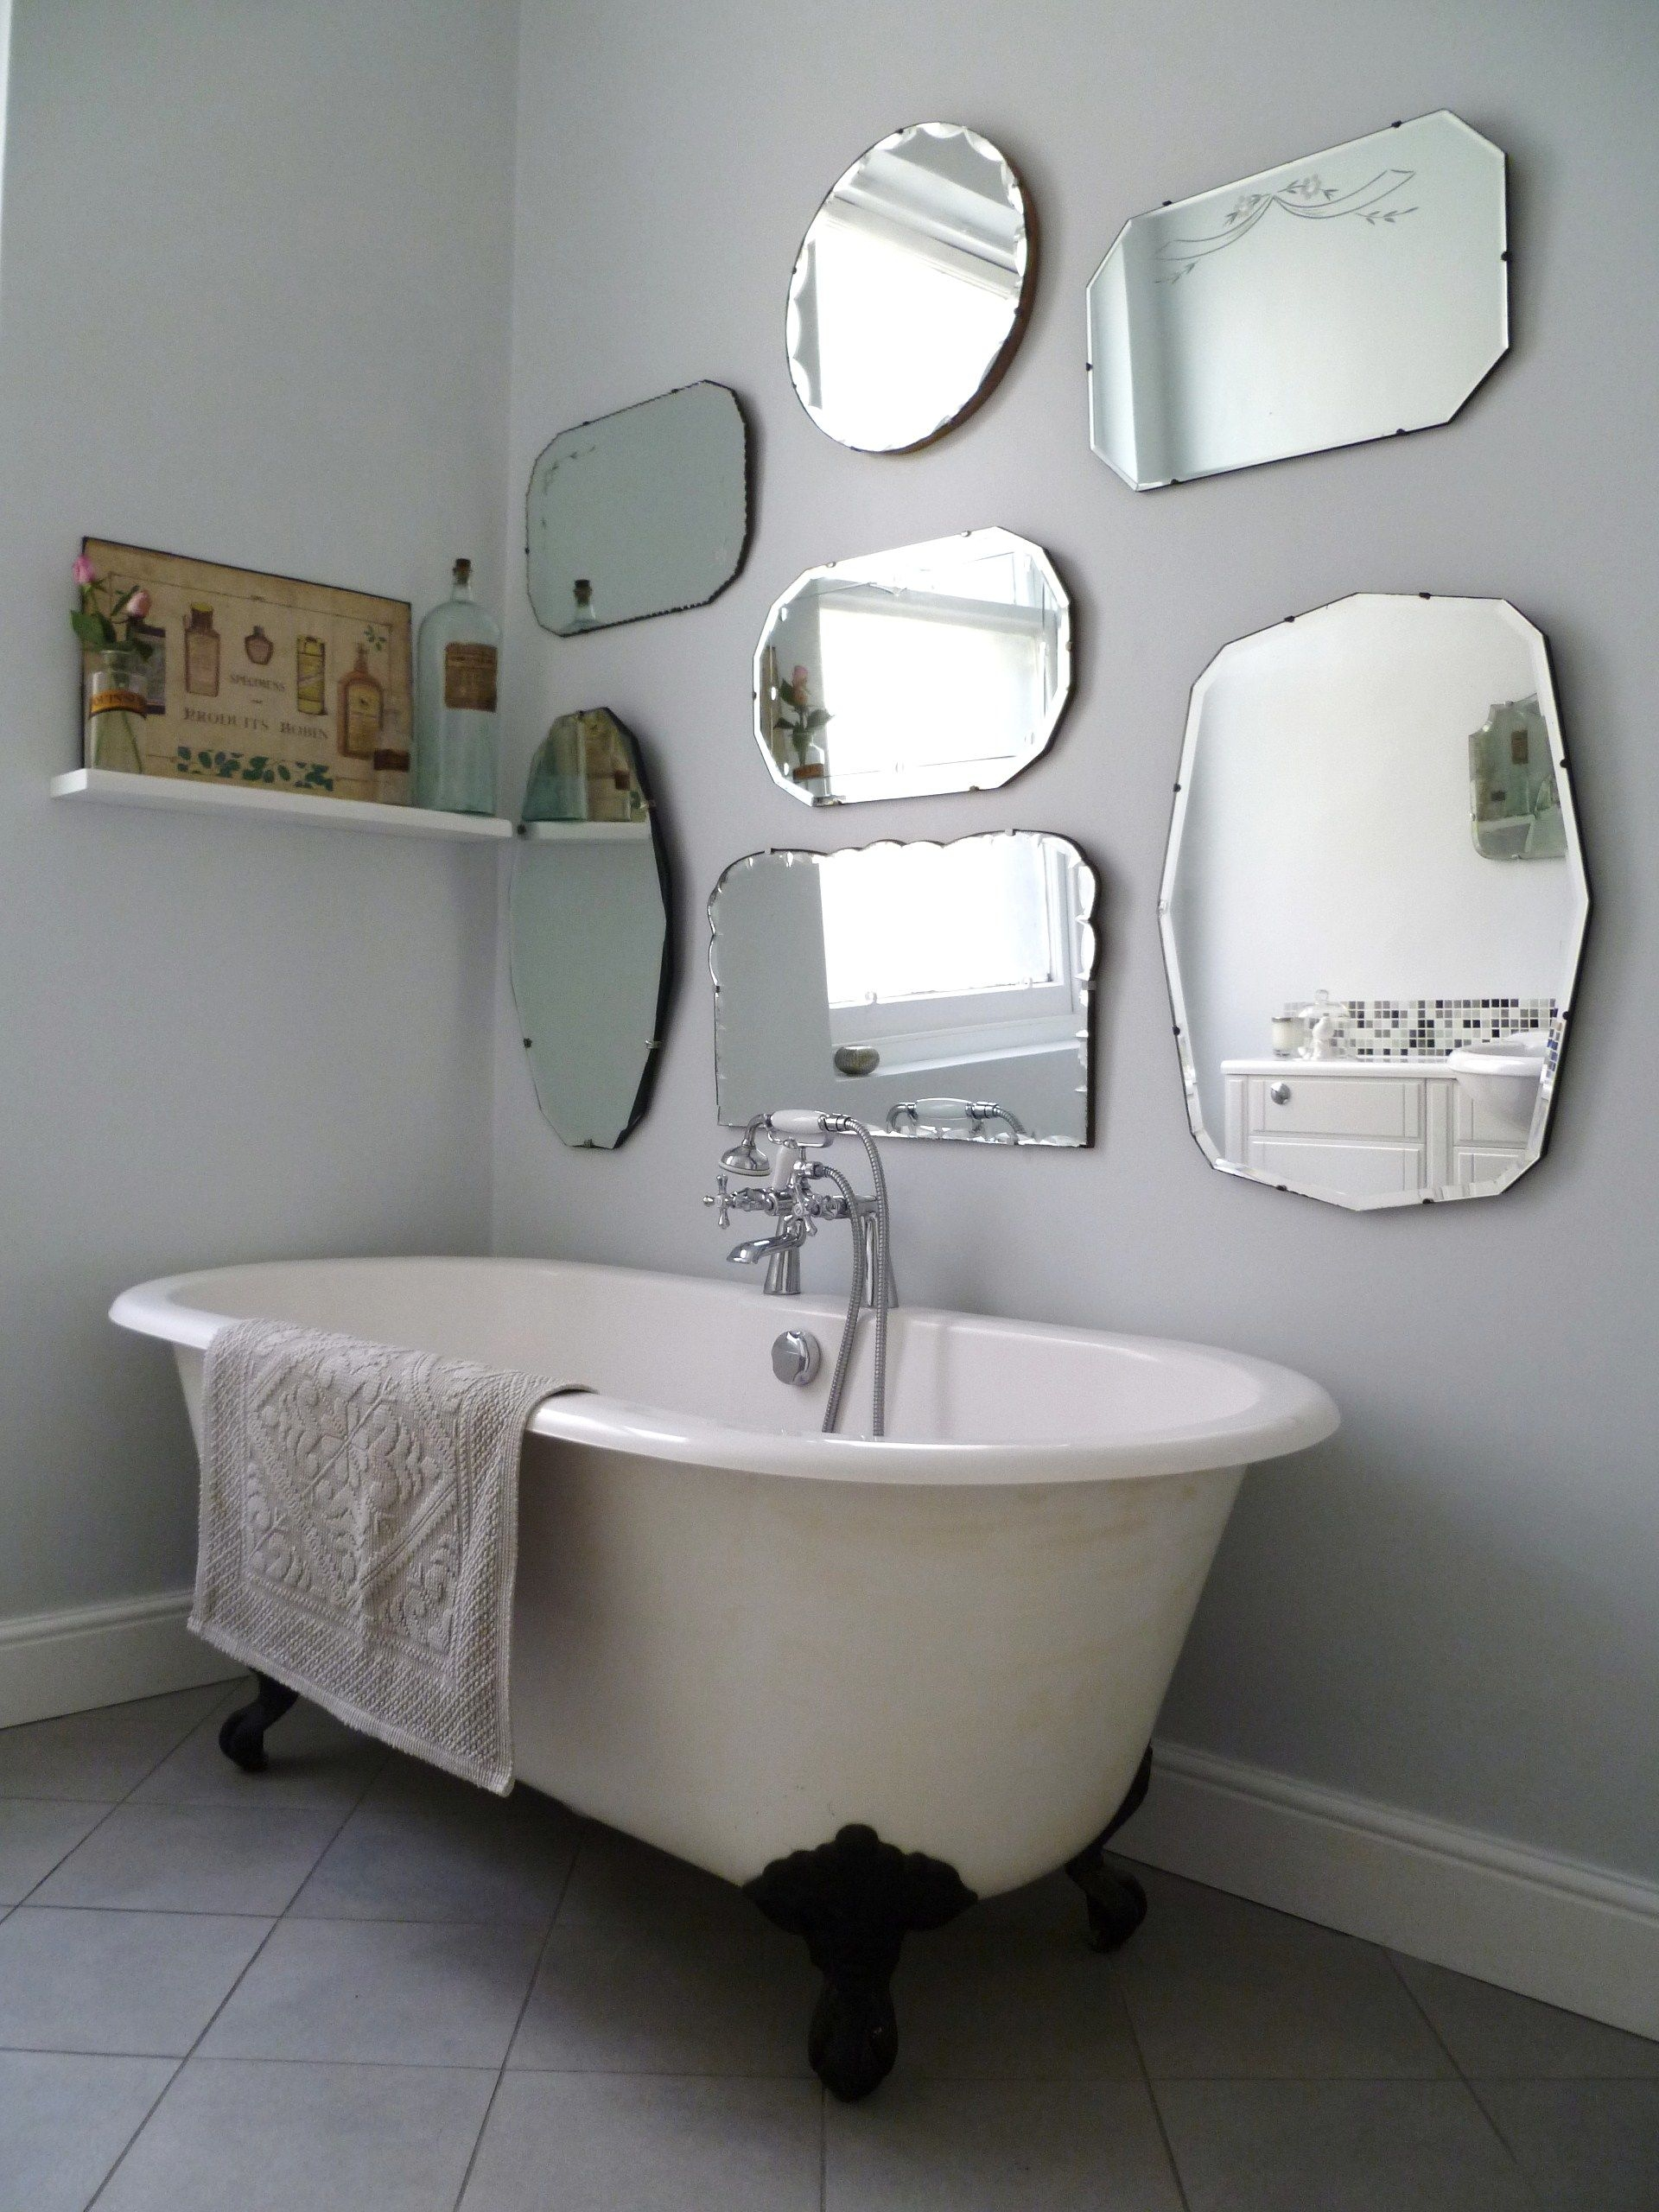 Vintage Bathroom Mirrors Sale Home Pertaining To Antique Bathroom Mirrors Sale (Image 15 of 15)